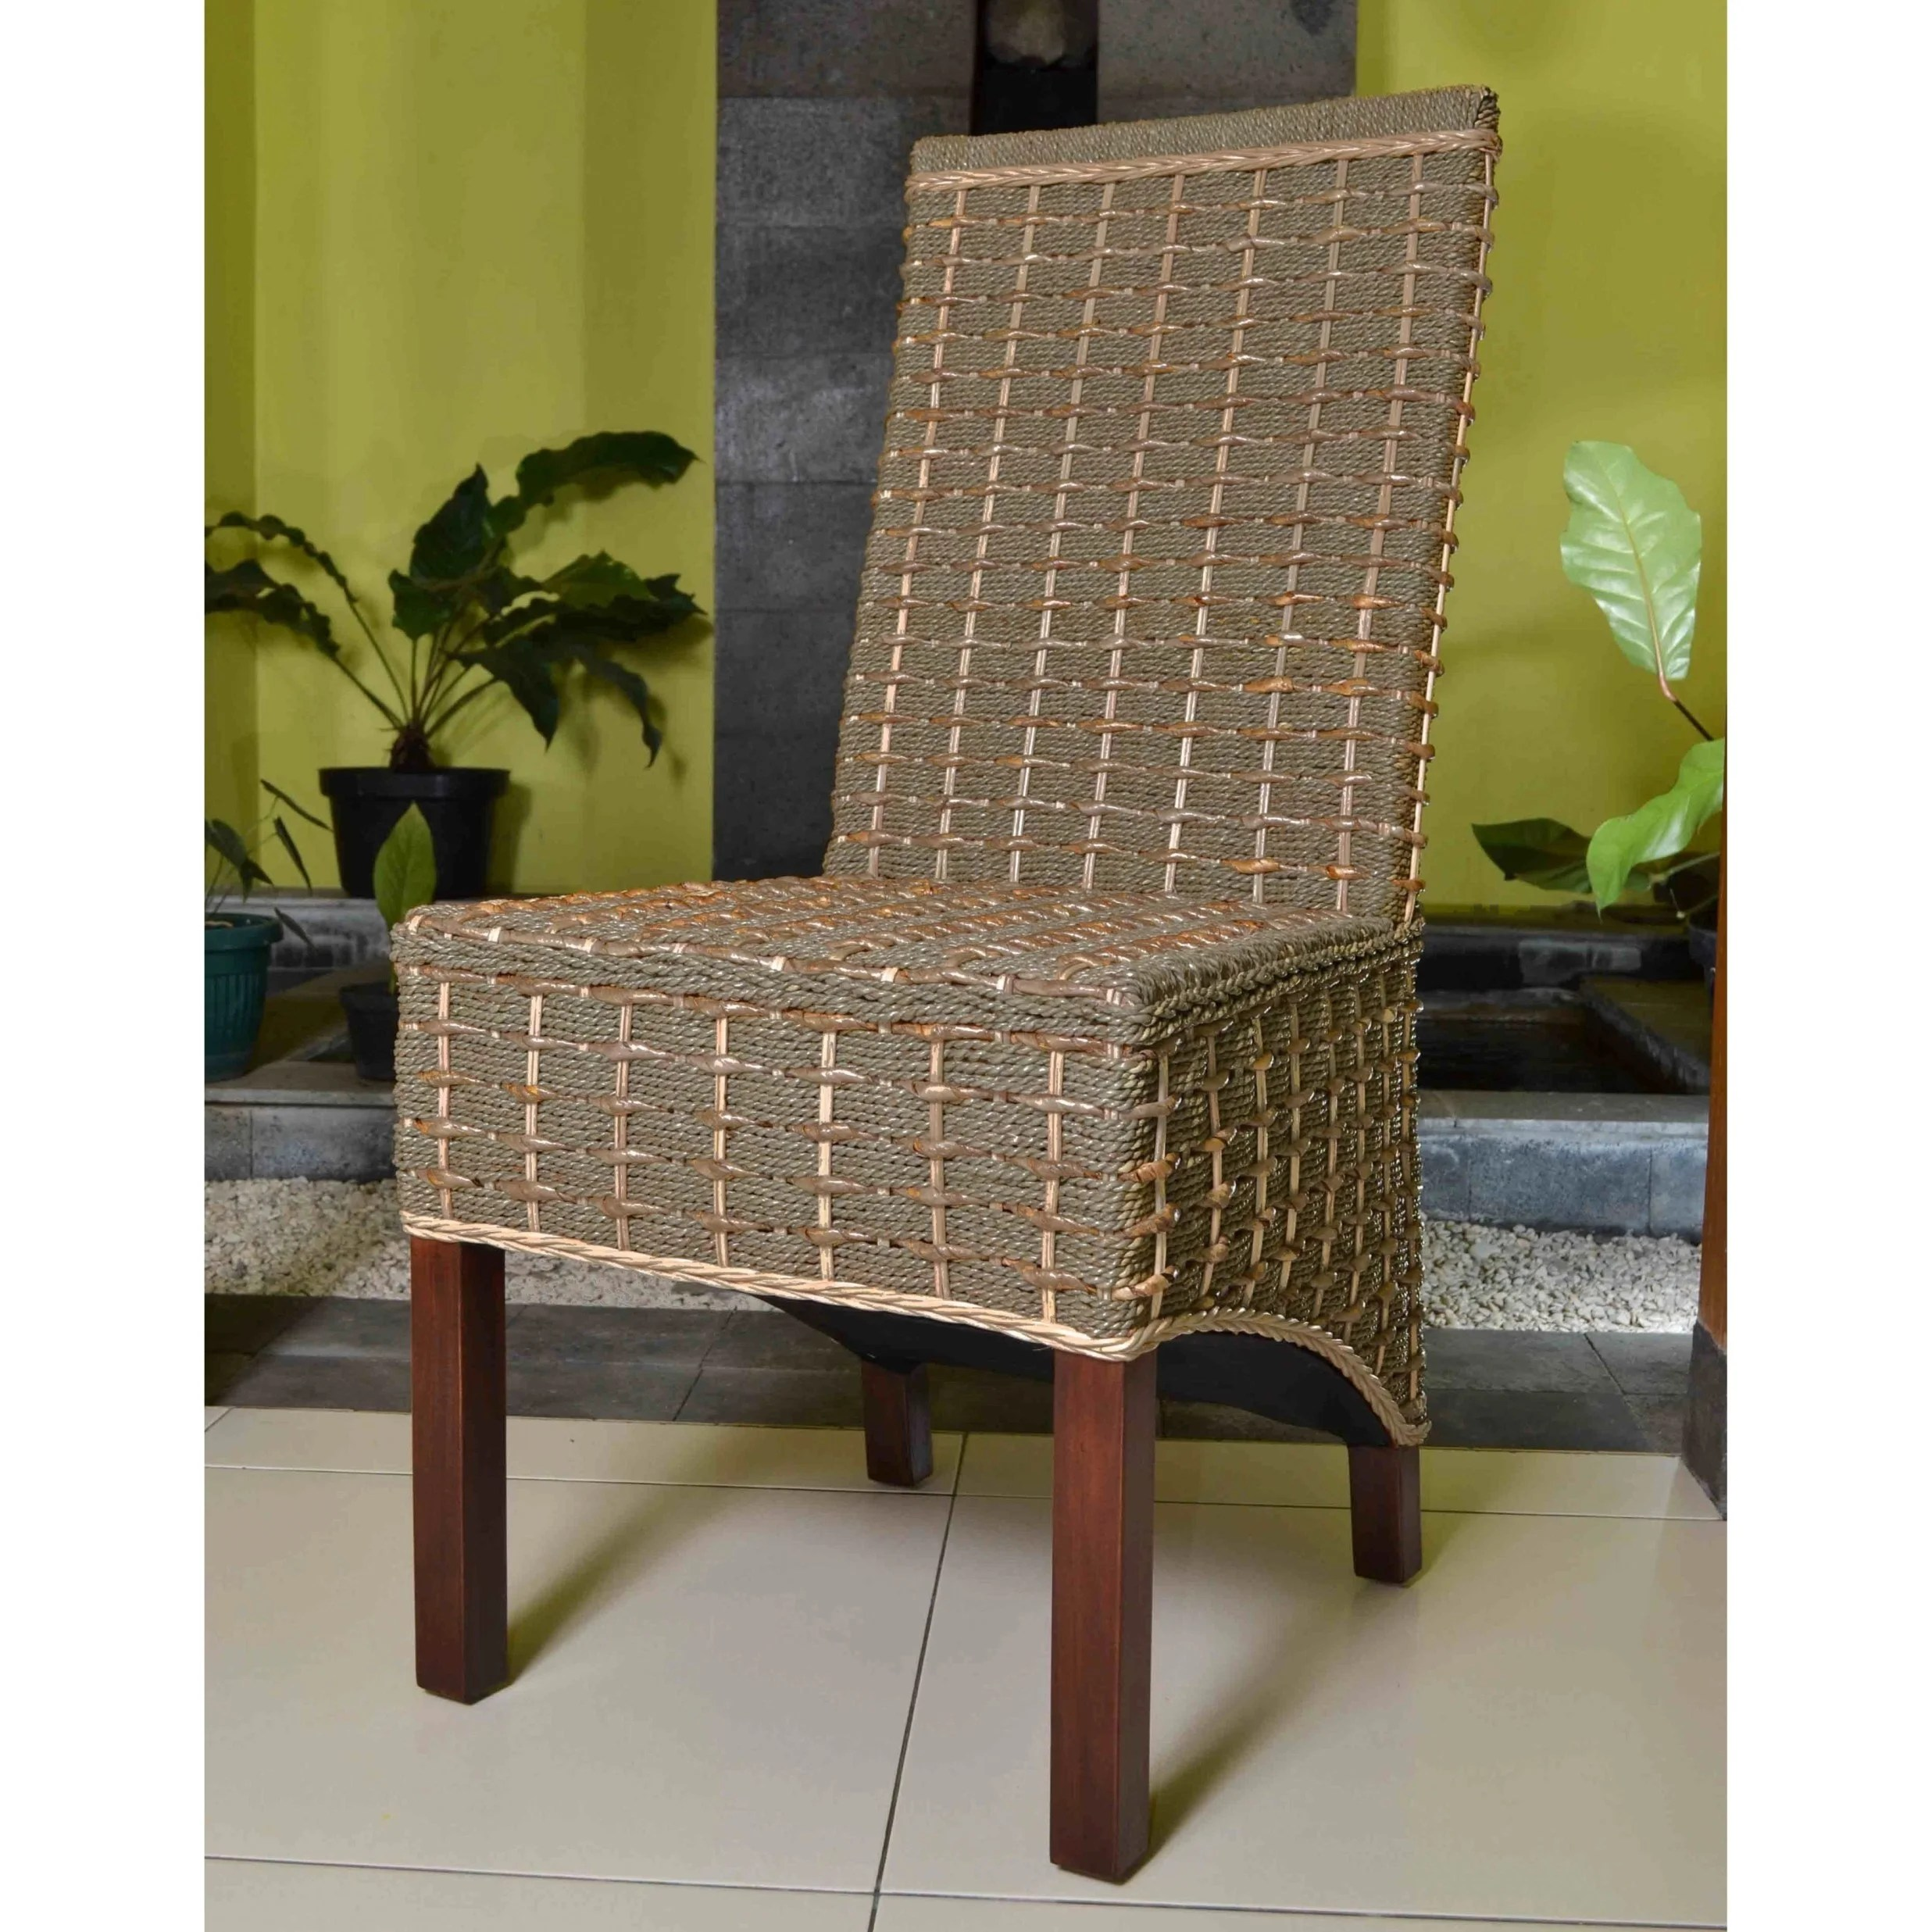 Seagrass Dining Chairs International Caravan 39bayu 39 Woven Abaca Seagrass Dining